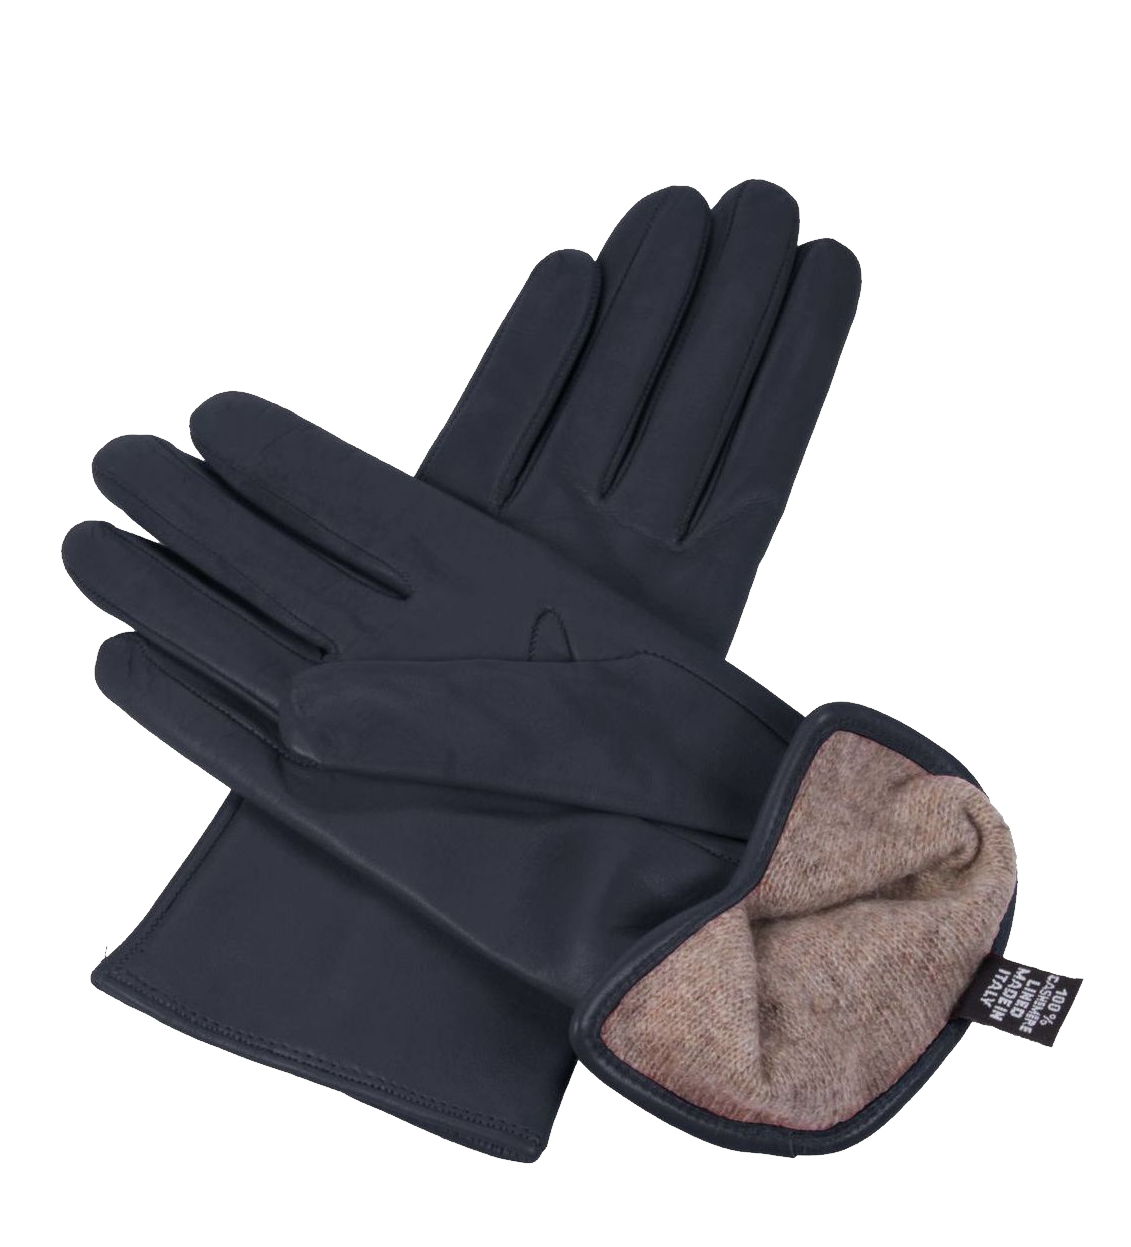 uploads gloves gloves PNG80267 4